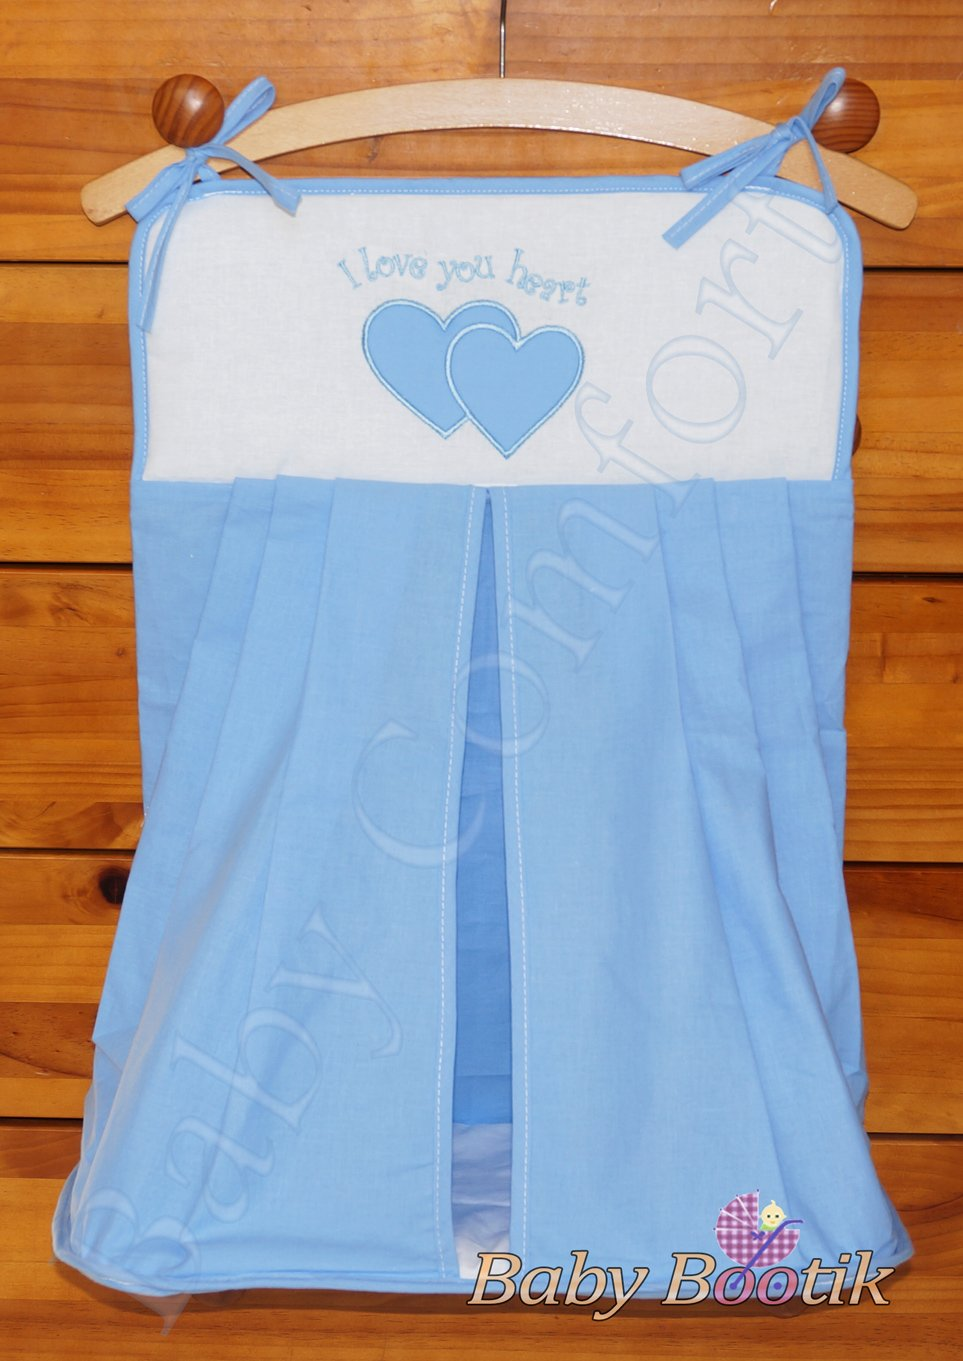 Nappy Stacker/Diaper Bag Match Baby Nursery COT or COT BED LOVE YOU HEART - EMBROIDERY BLUE Babycomfort